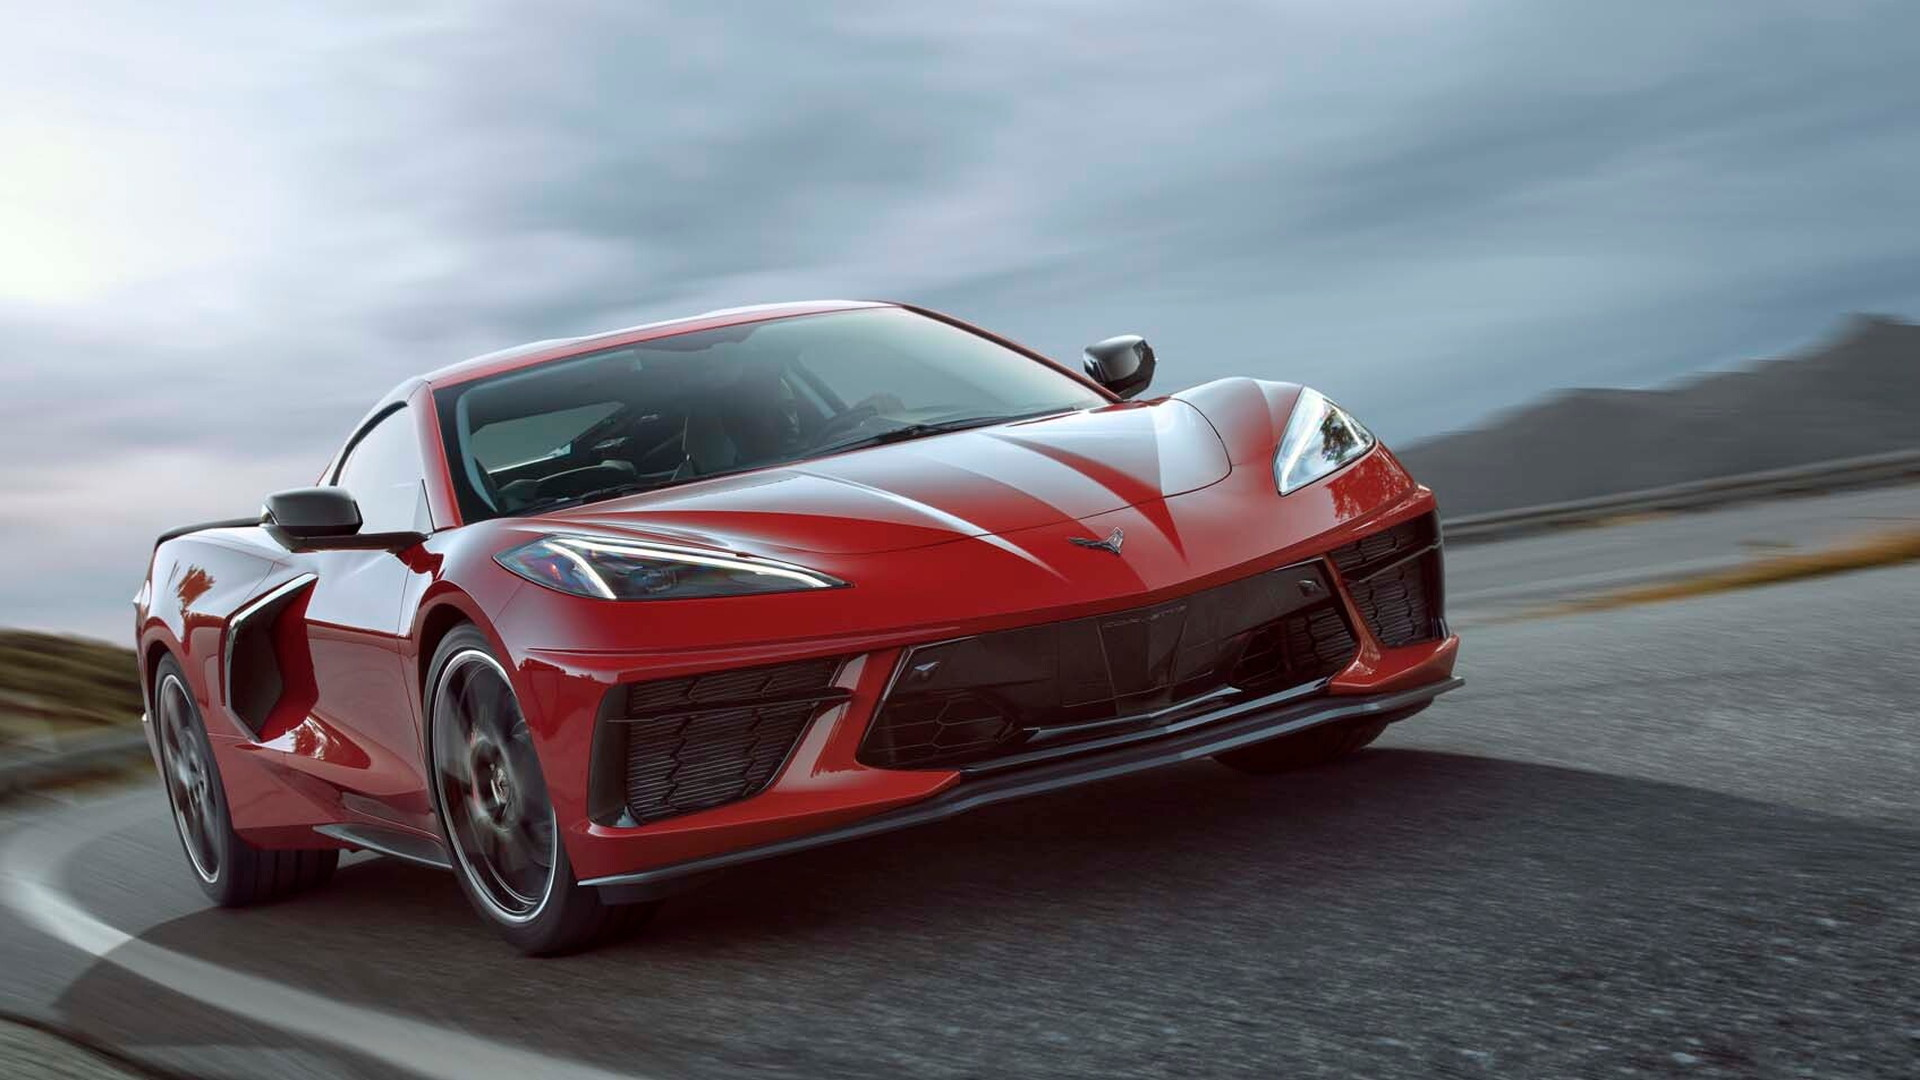 0 60 Times Bmw >> How The 2020 Chevrolet Corvette Stingray Achieves A Sub 3